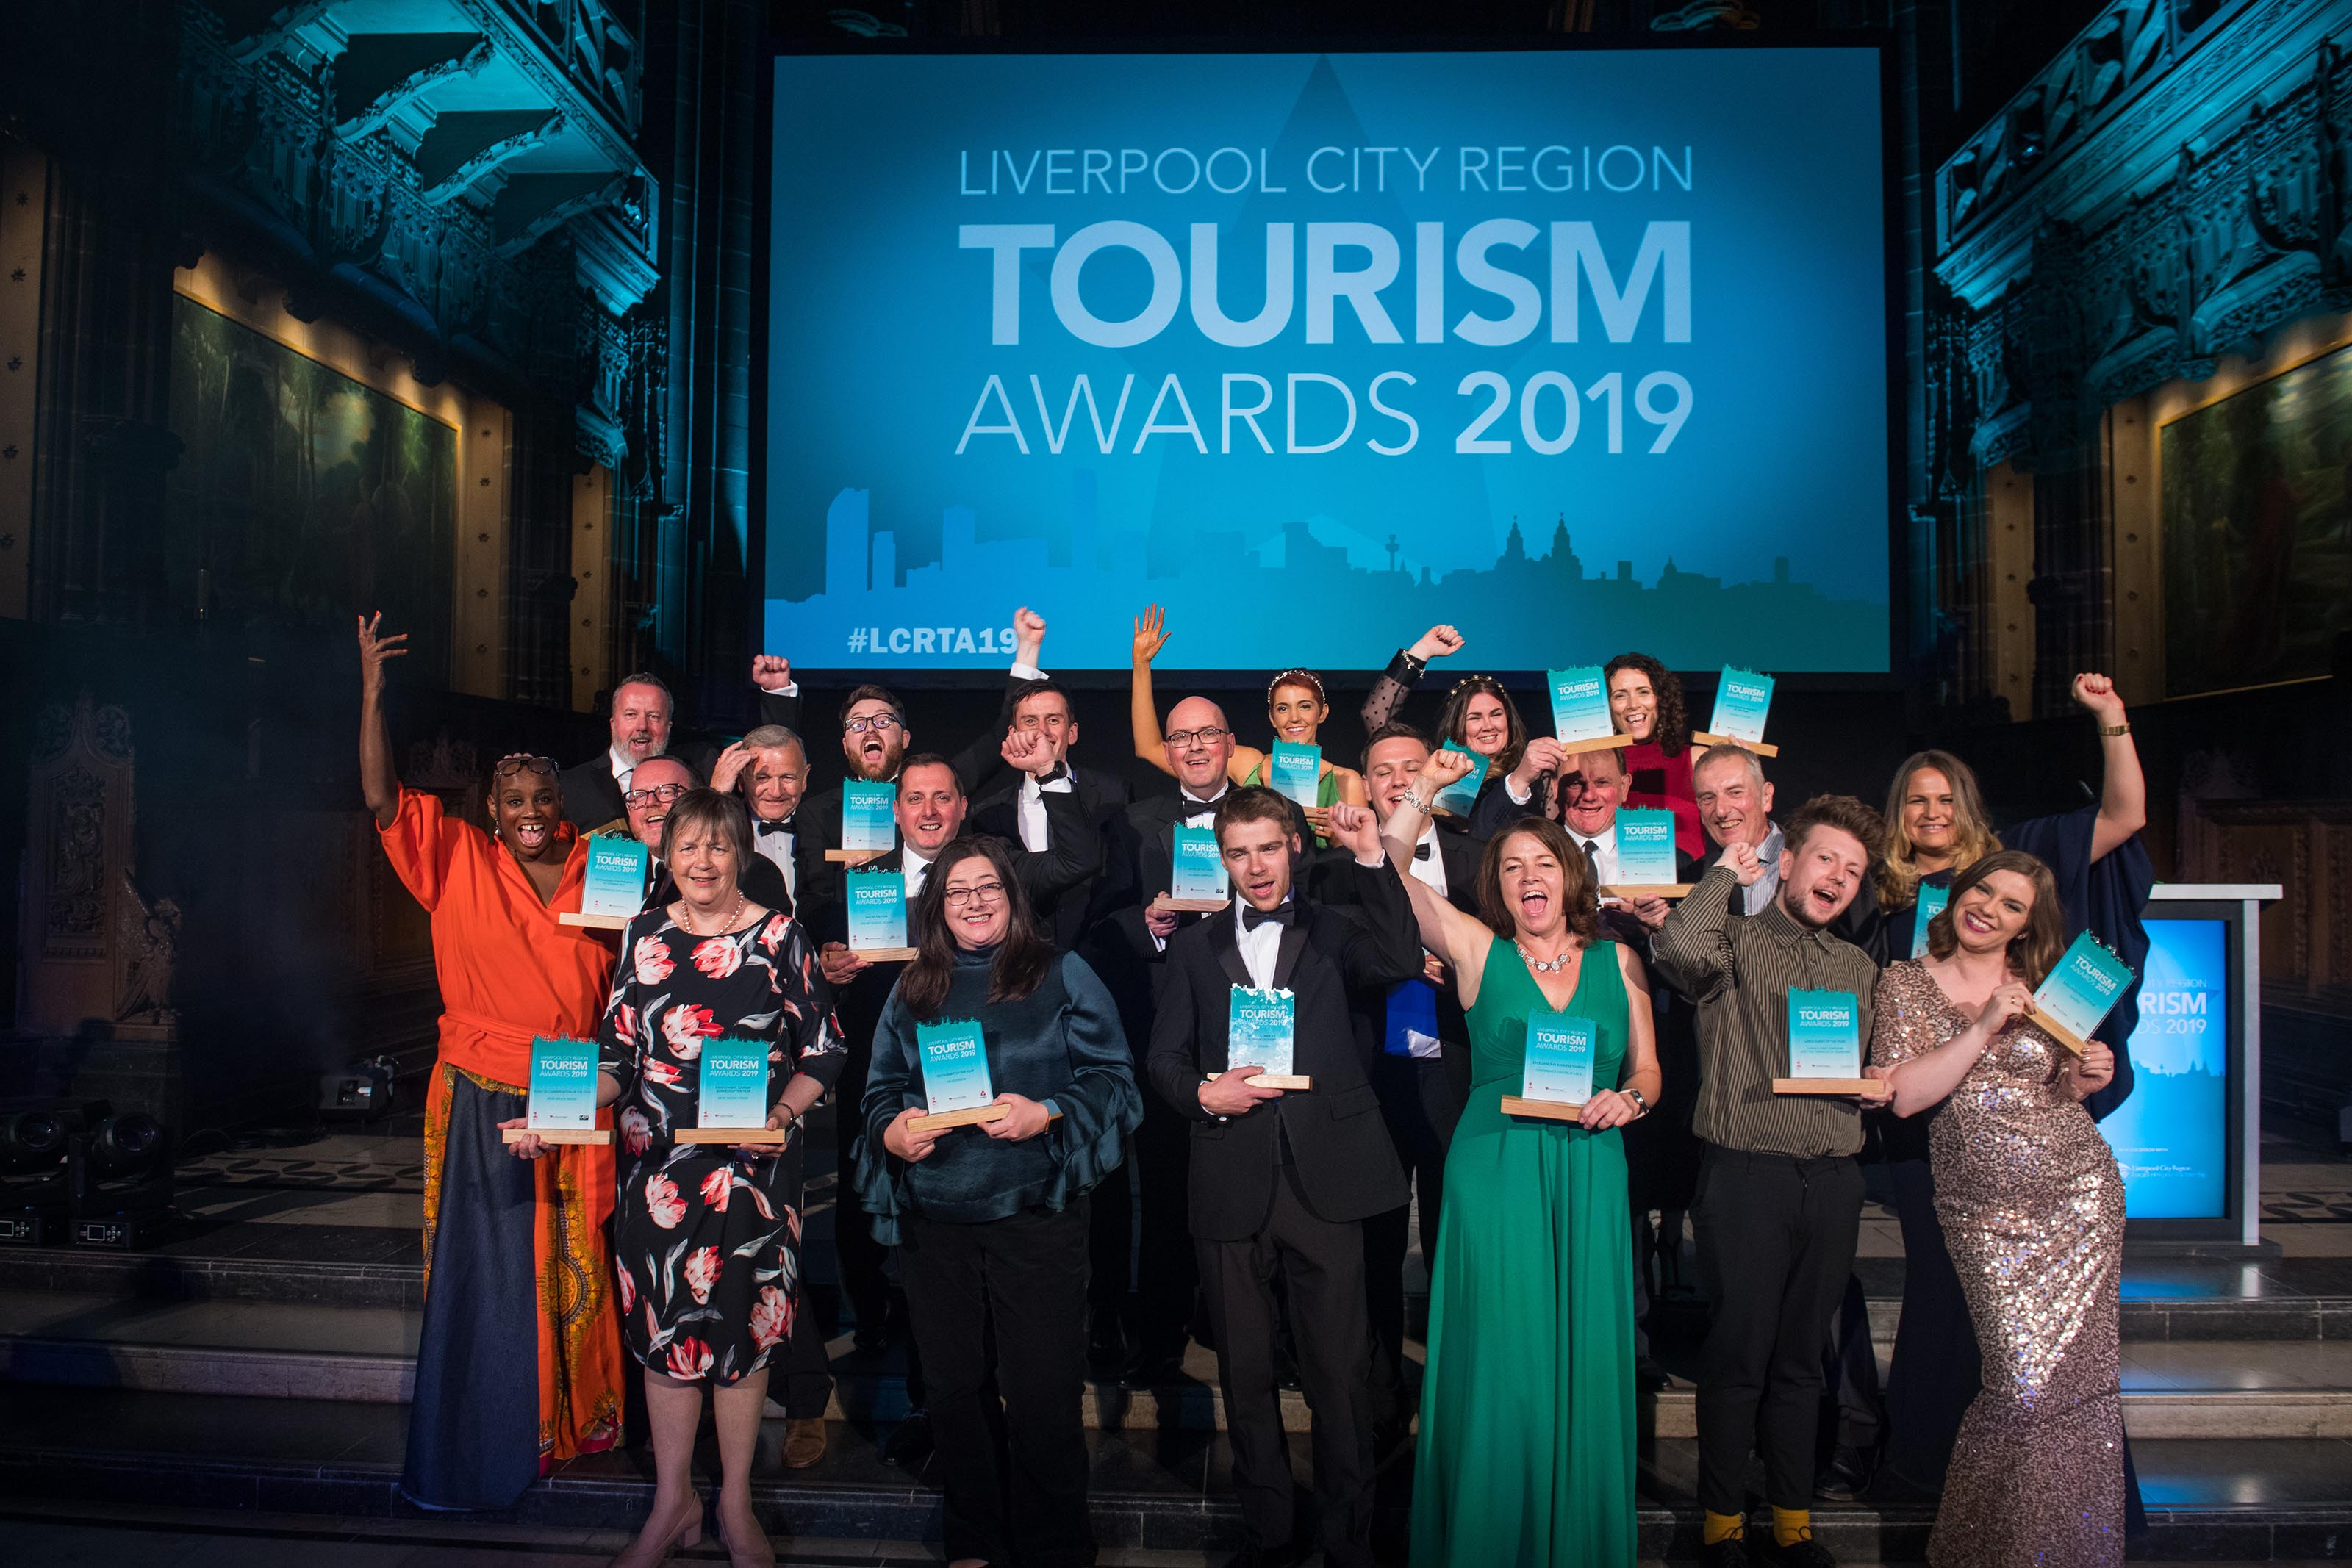 Mills Media appointed to run Liverpool City Region Tourism Awards header internal